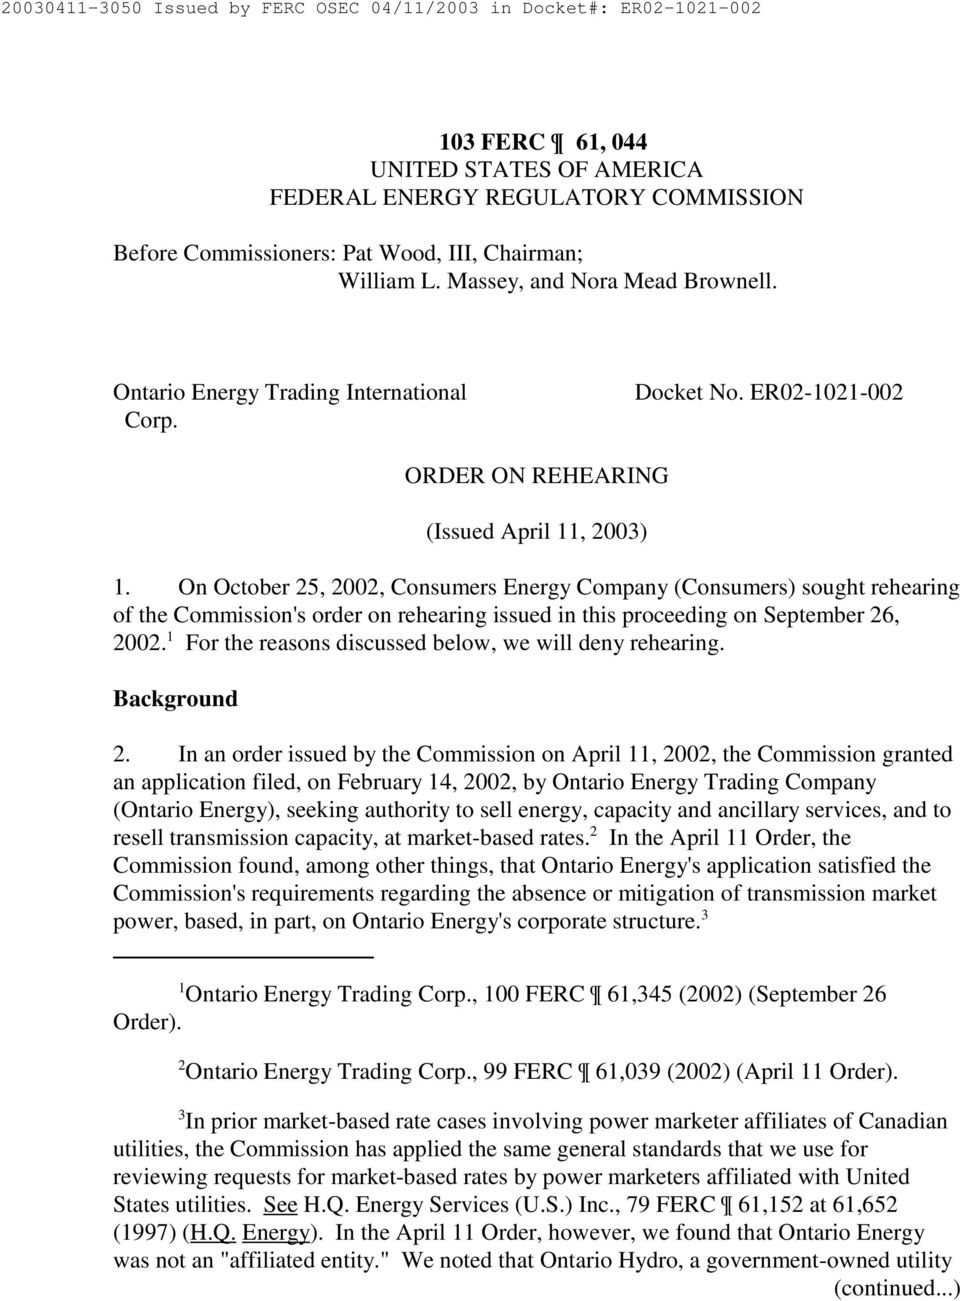 On October 25, 2002, Consumers Energy Company (Consumers) sought rehearing of the Commission's order on rehearing issued in this proceeding on September 26, 2002.